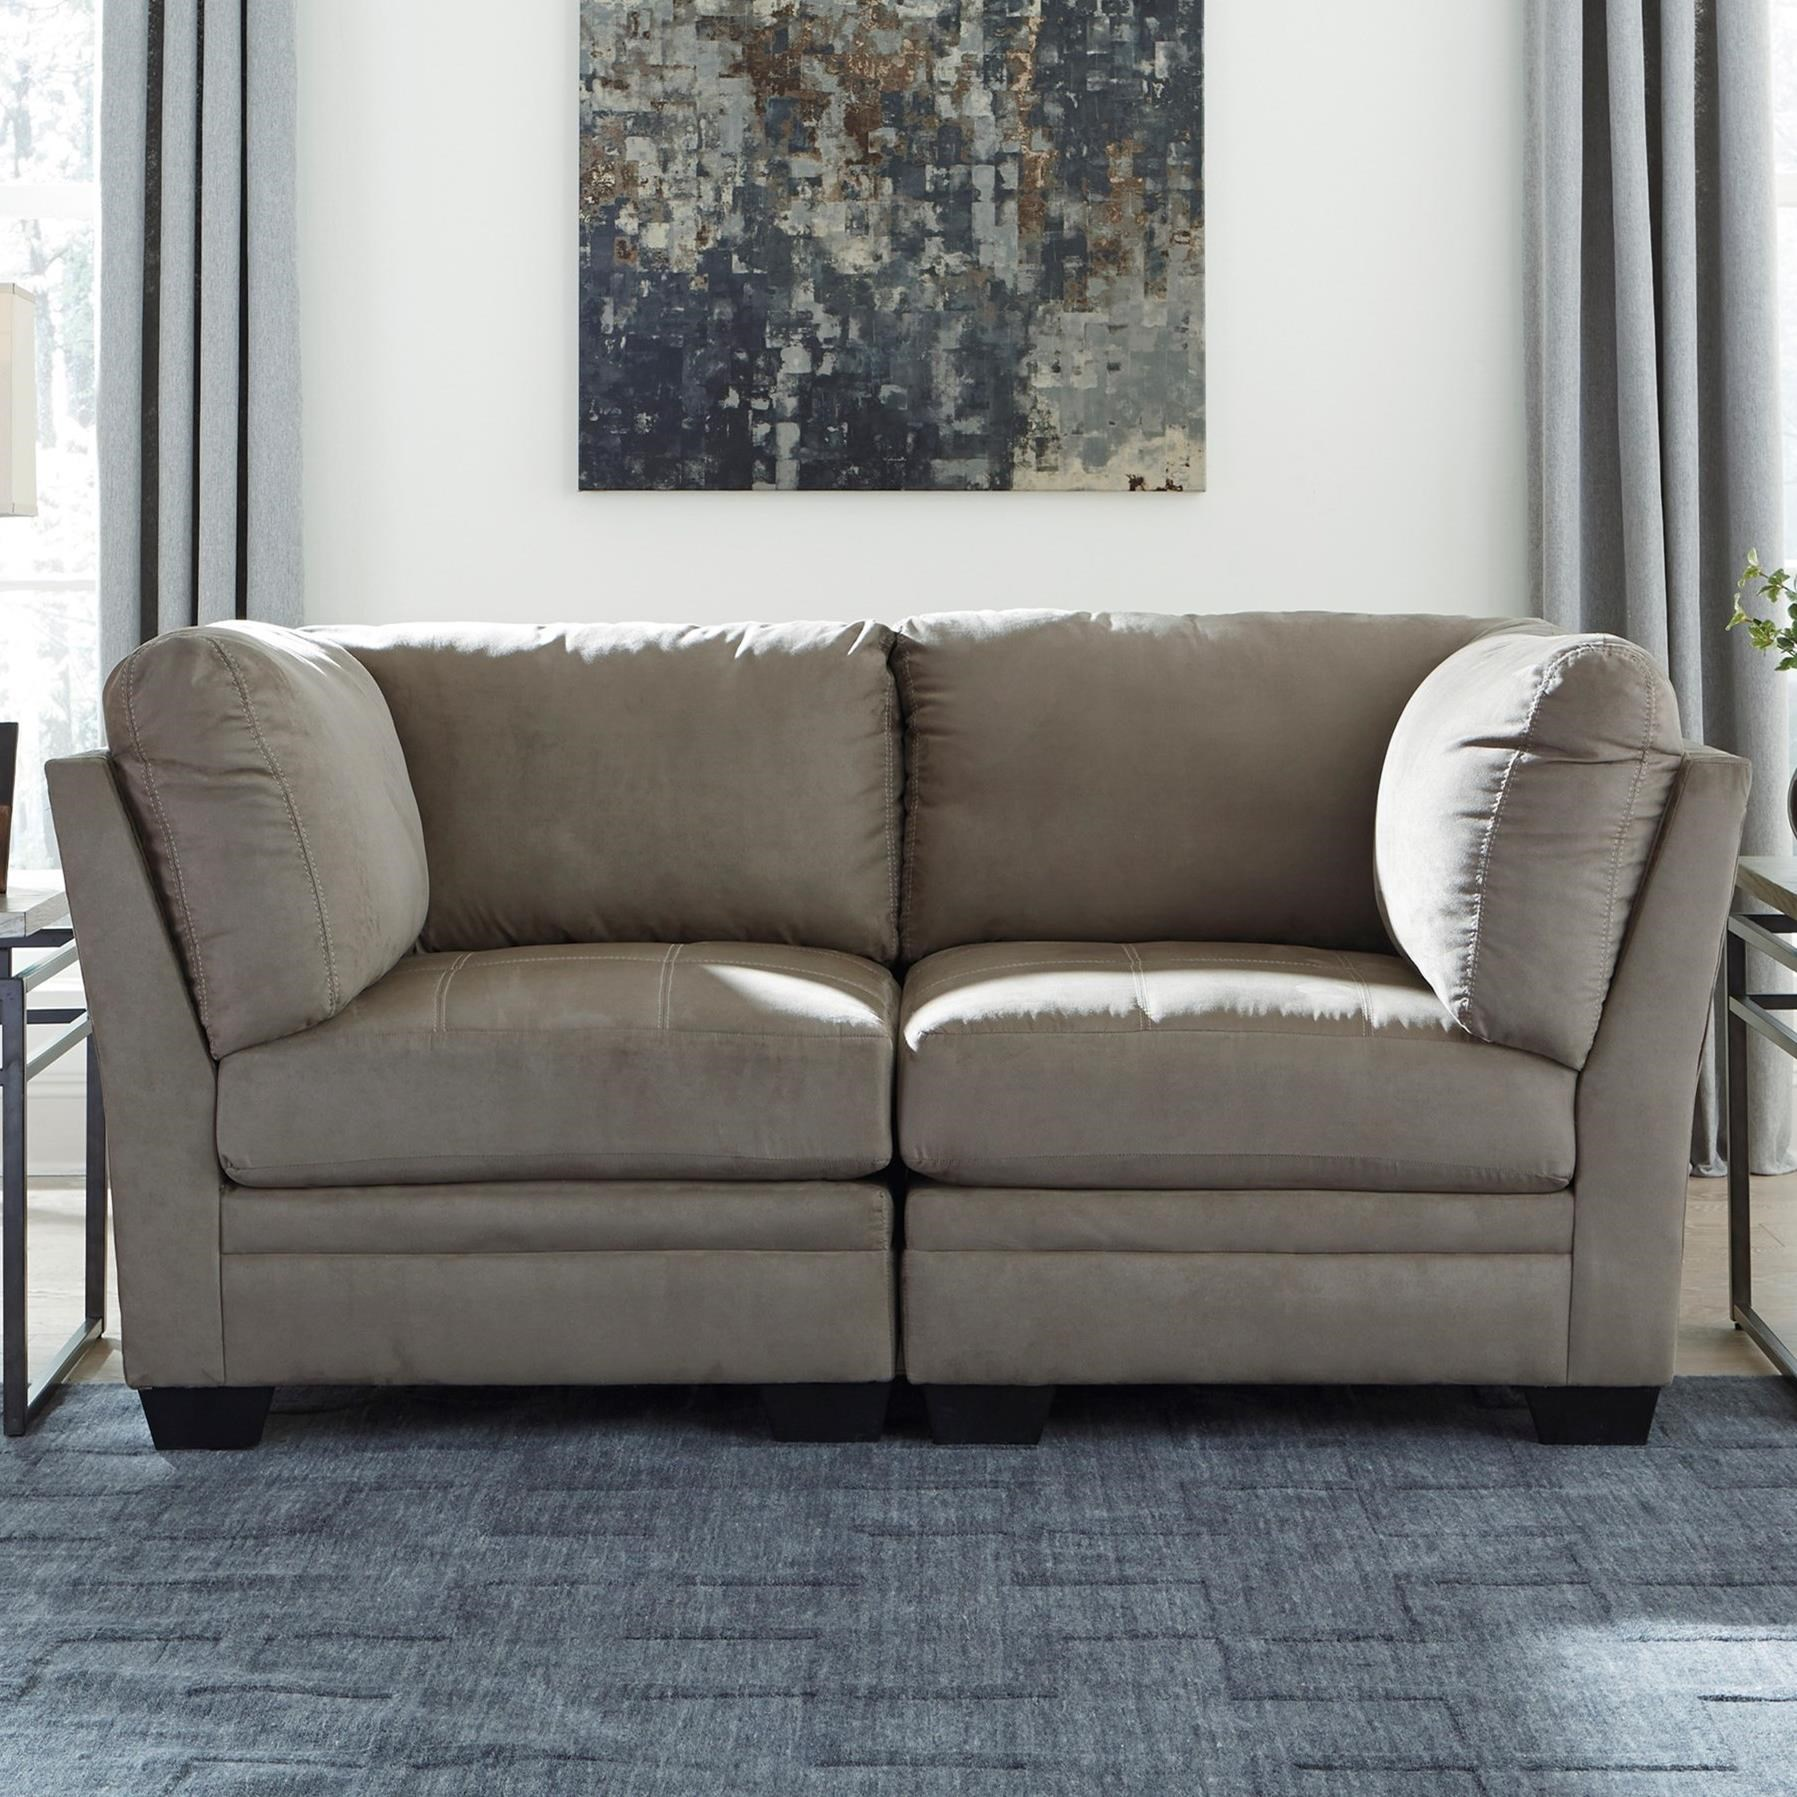 Signature Design by Ashley Iago Modular Loveseat - Item Number: 6510351x2